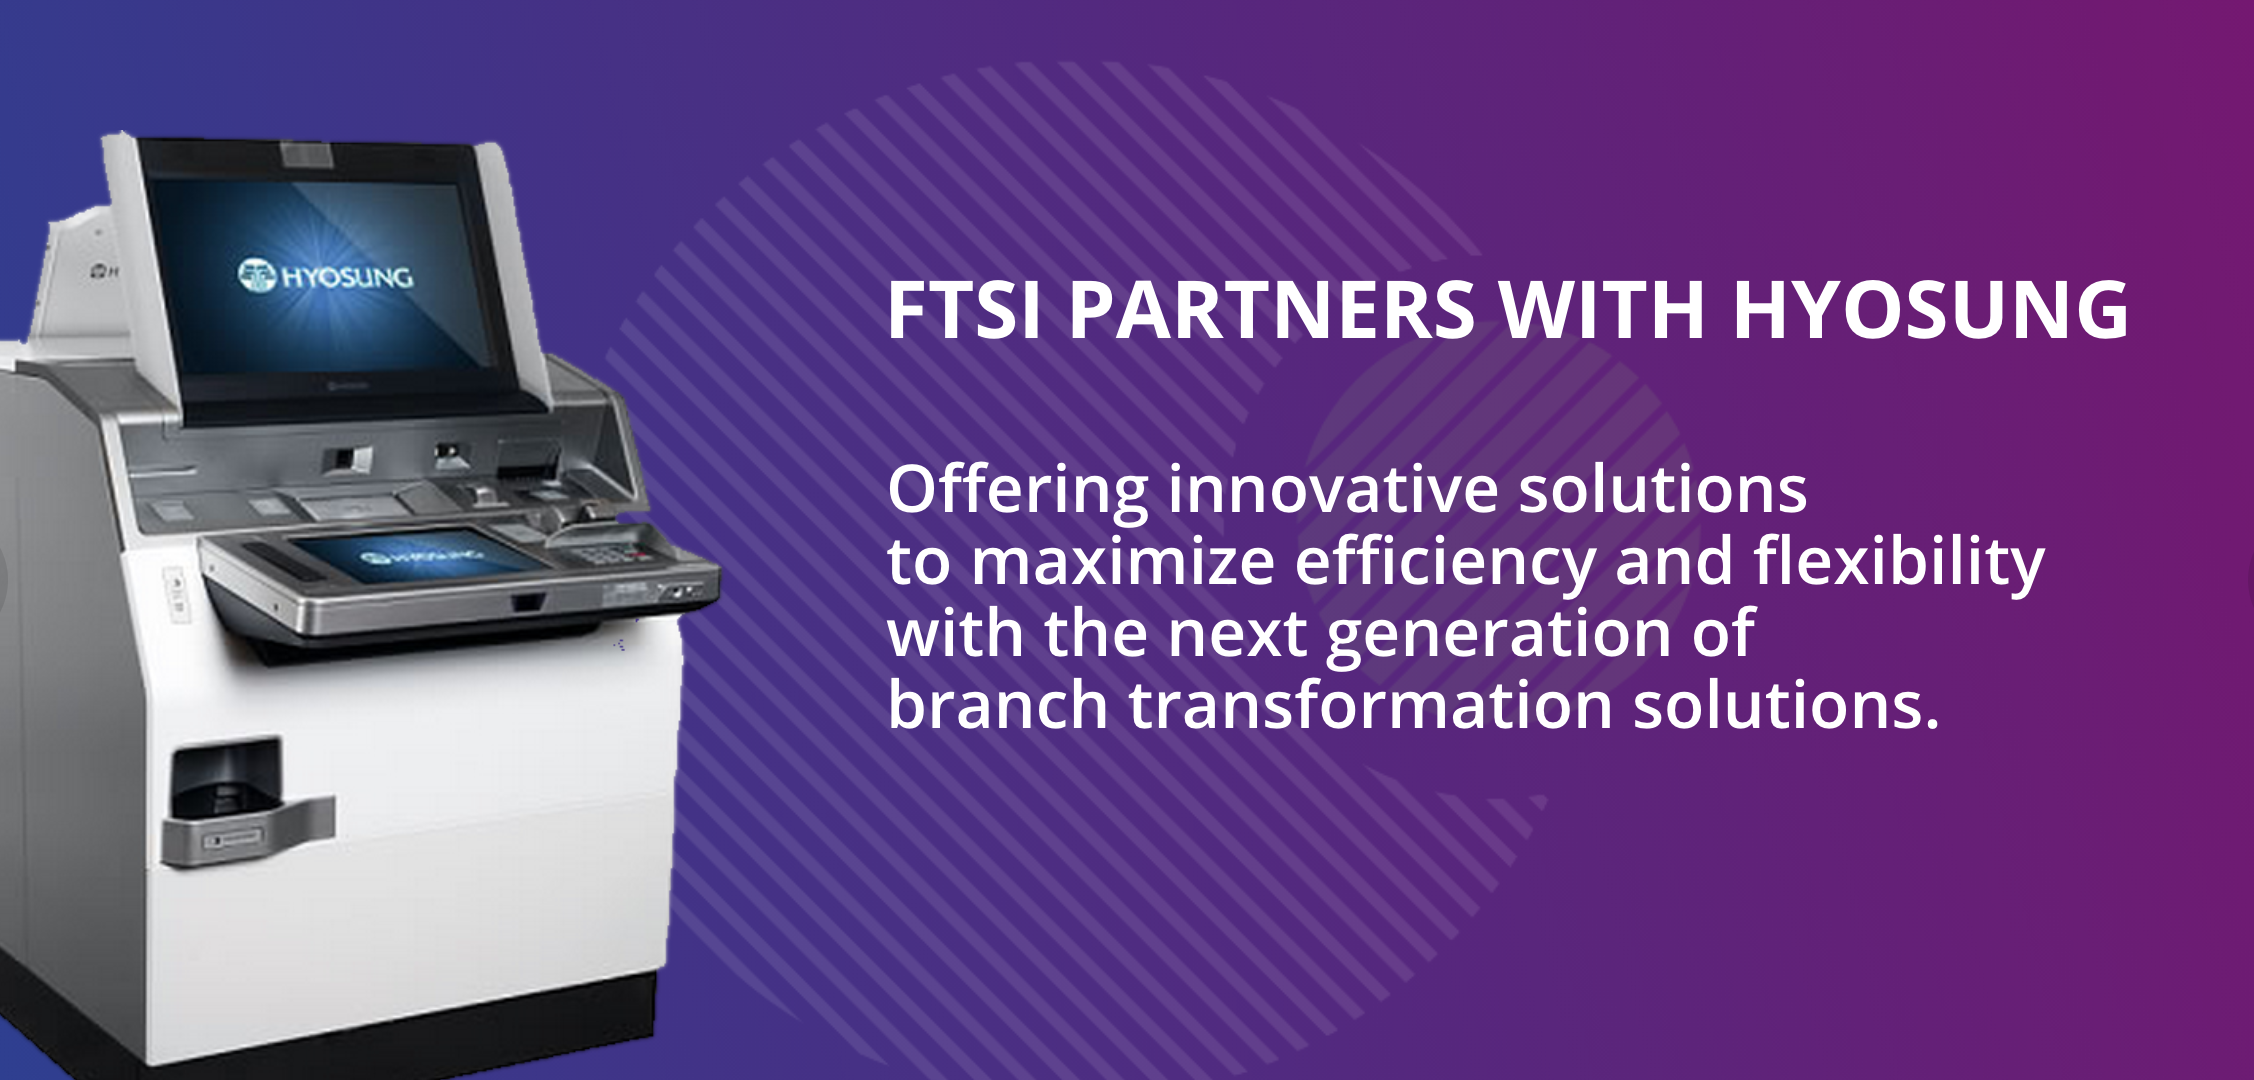 FTSI Partners with Hyosung for Innovative Branch Transformation Solutions